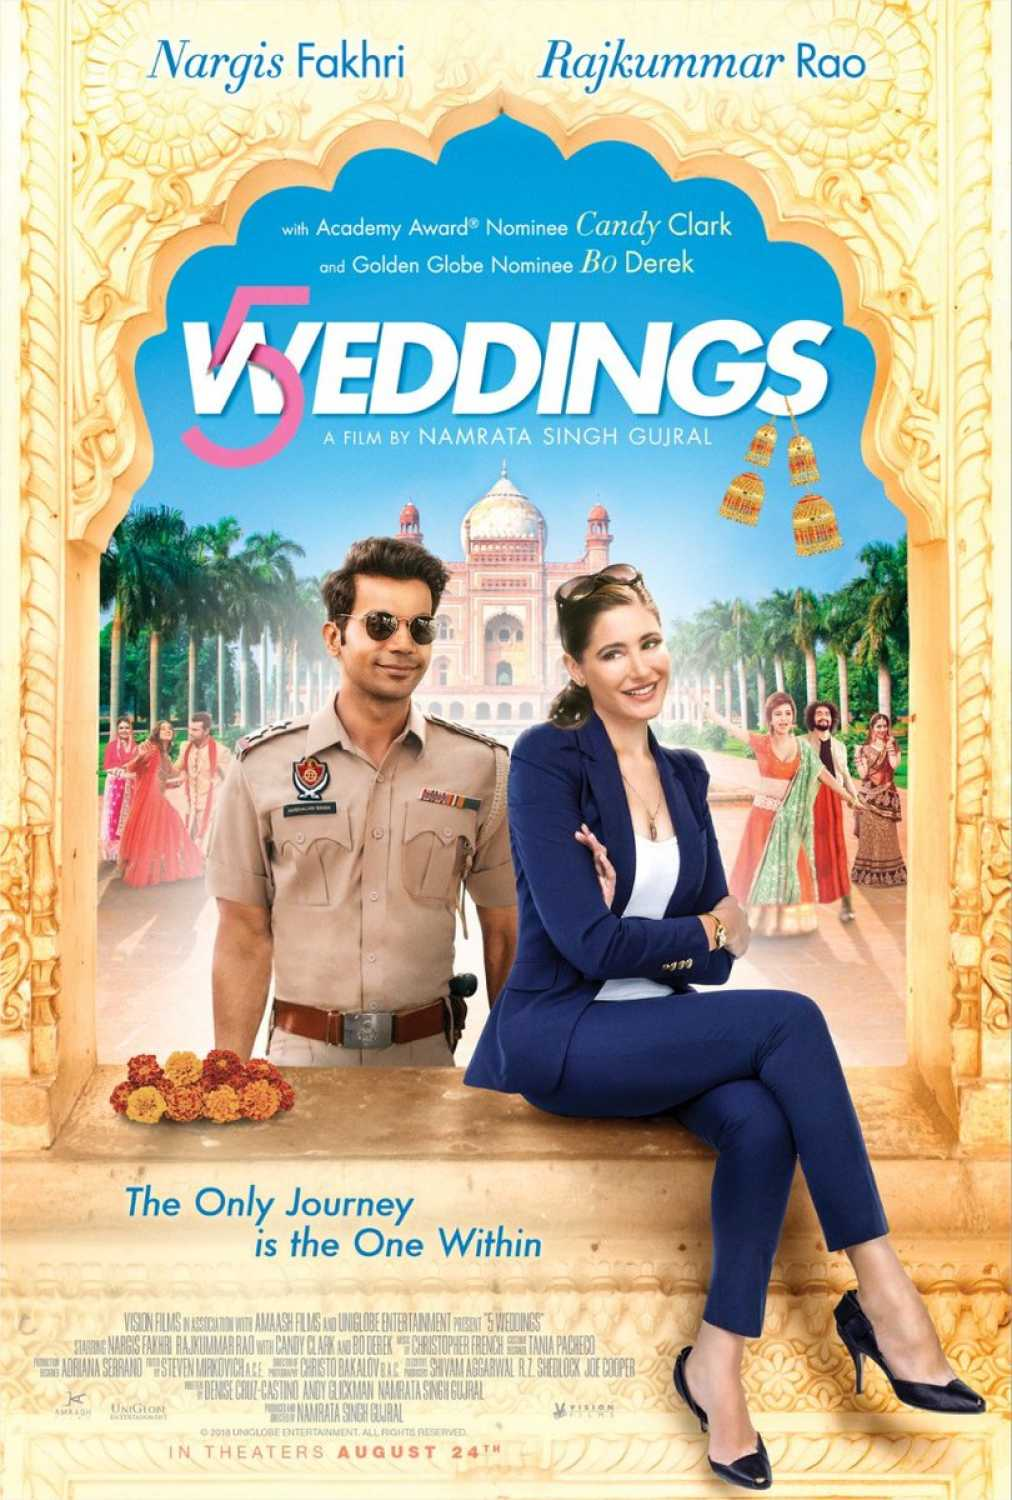 5 Weddings 2018 Download And Watch Letest Movies